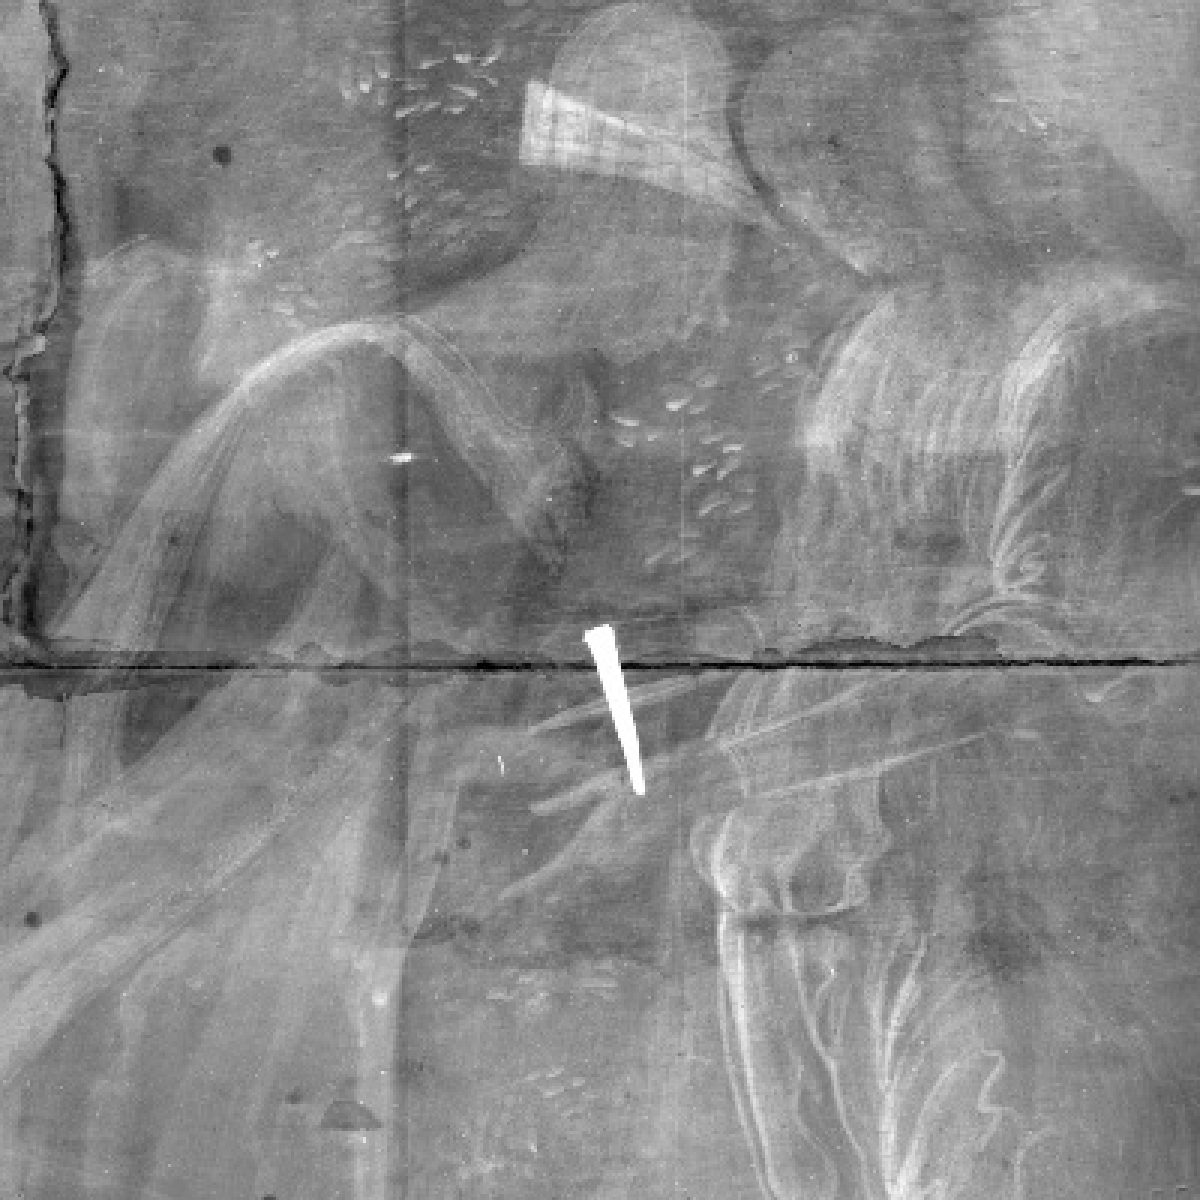 A section of an x-ray of Cupid & Psyche that shows a nail in white across two boards of wood. The painting is lightly visible.